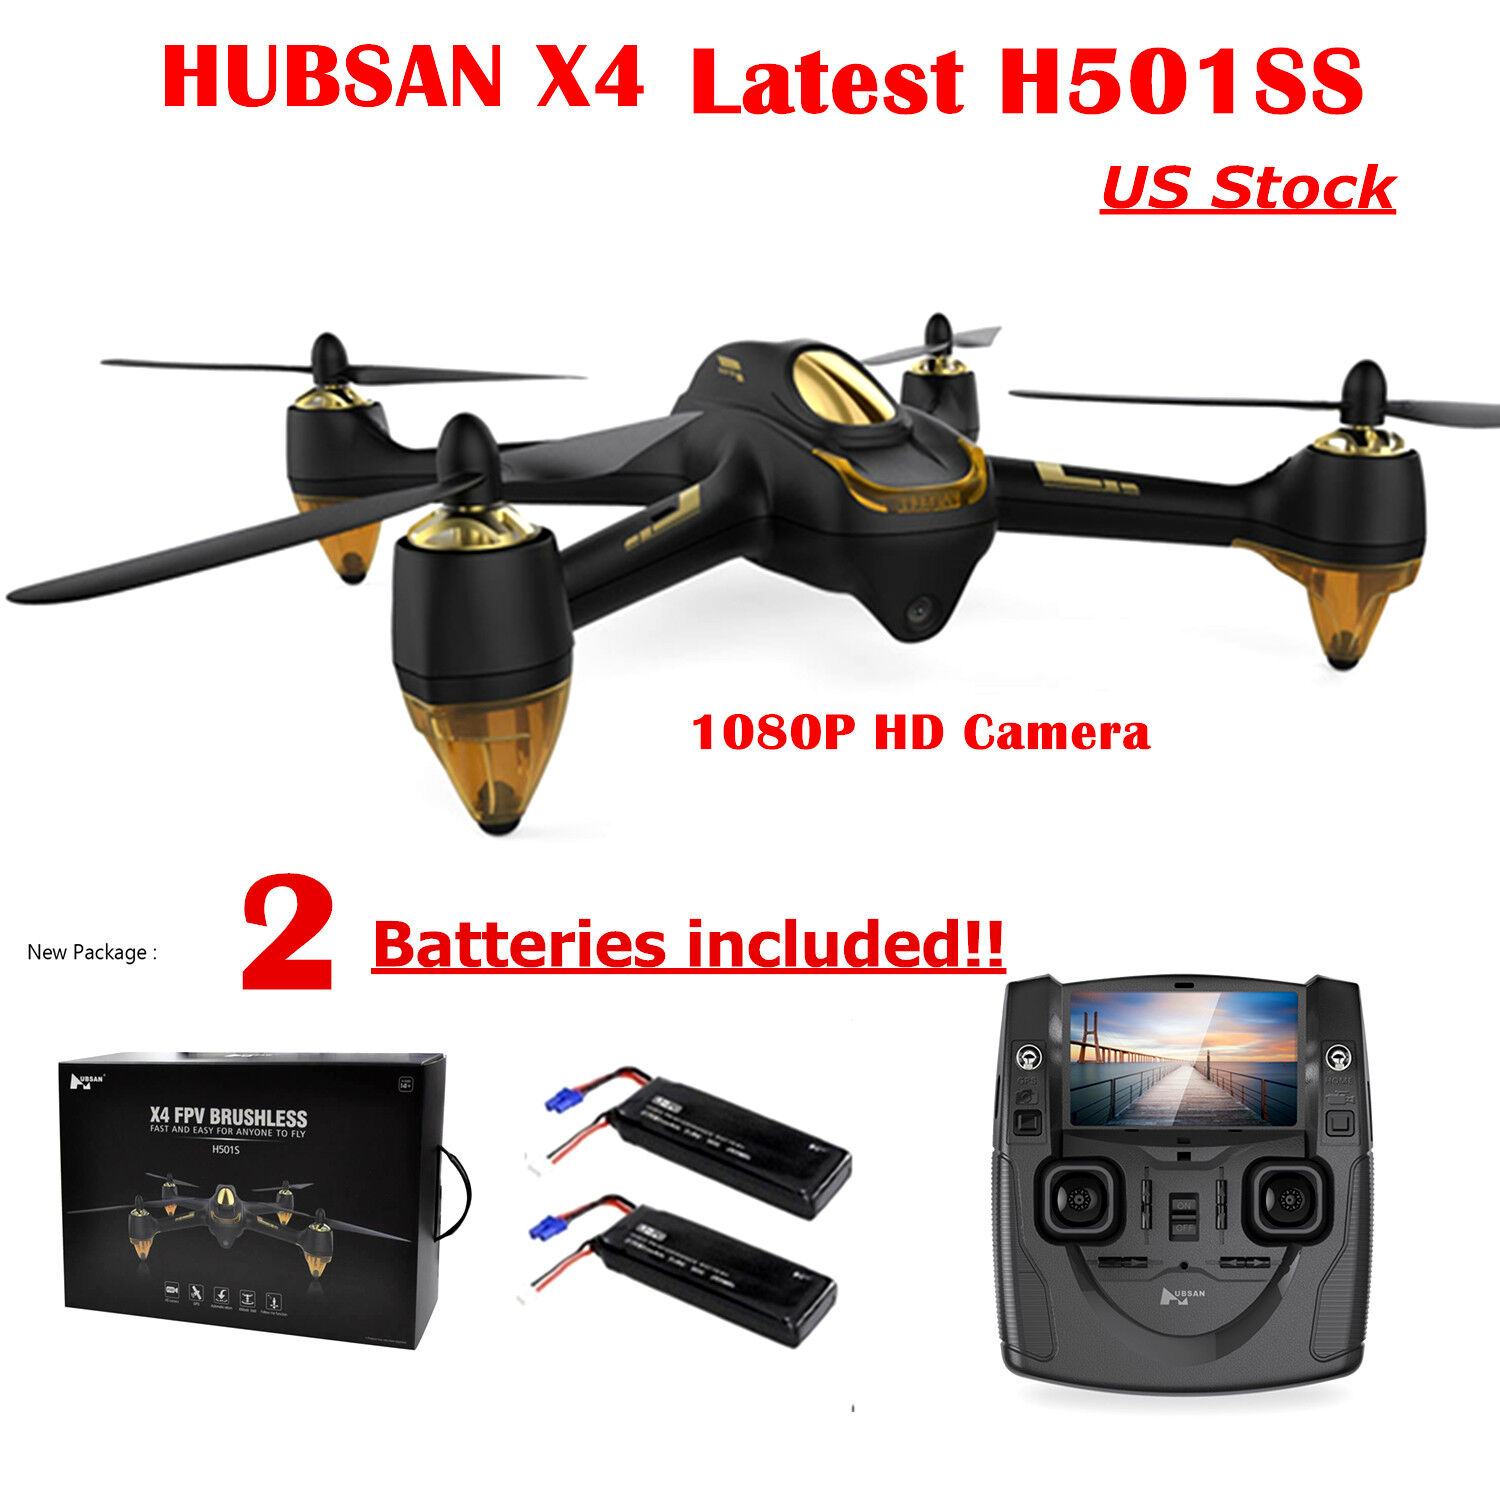 Hubsan H501S X4 Drone FPV GPS RC Quadcopter Brushless 1080P HD Camera RTH US,RTF